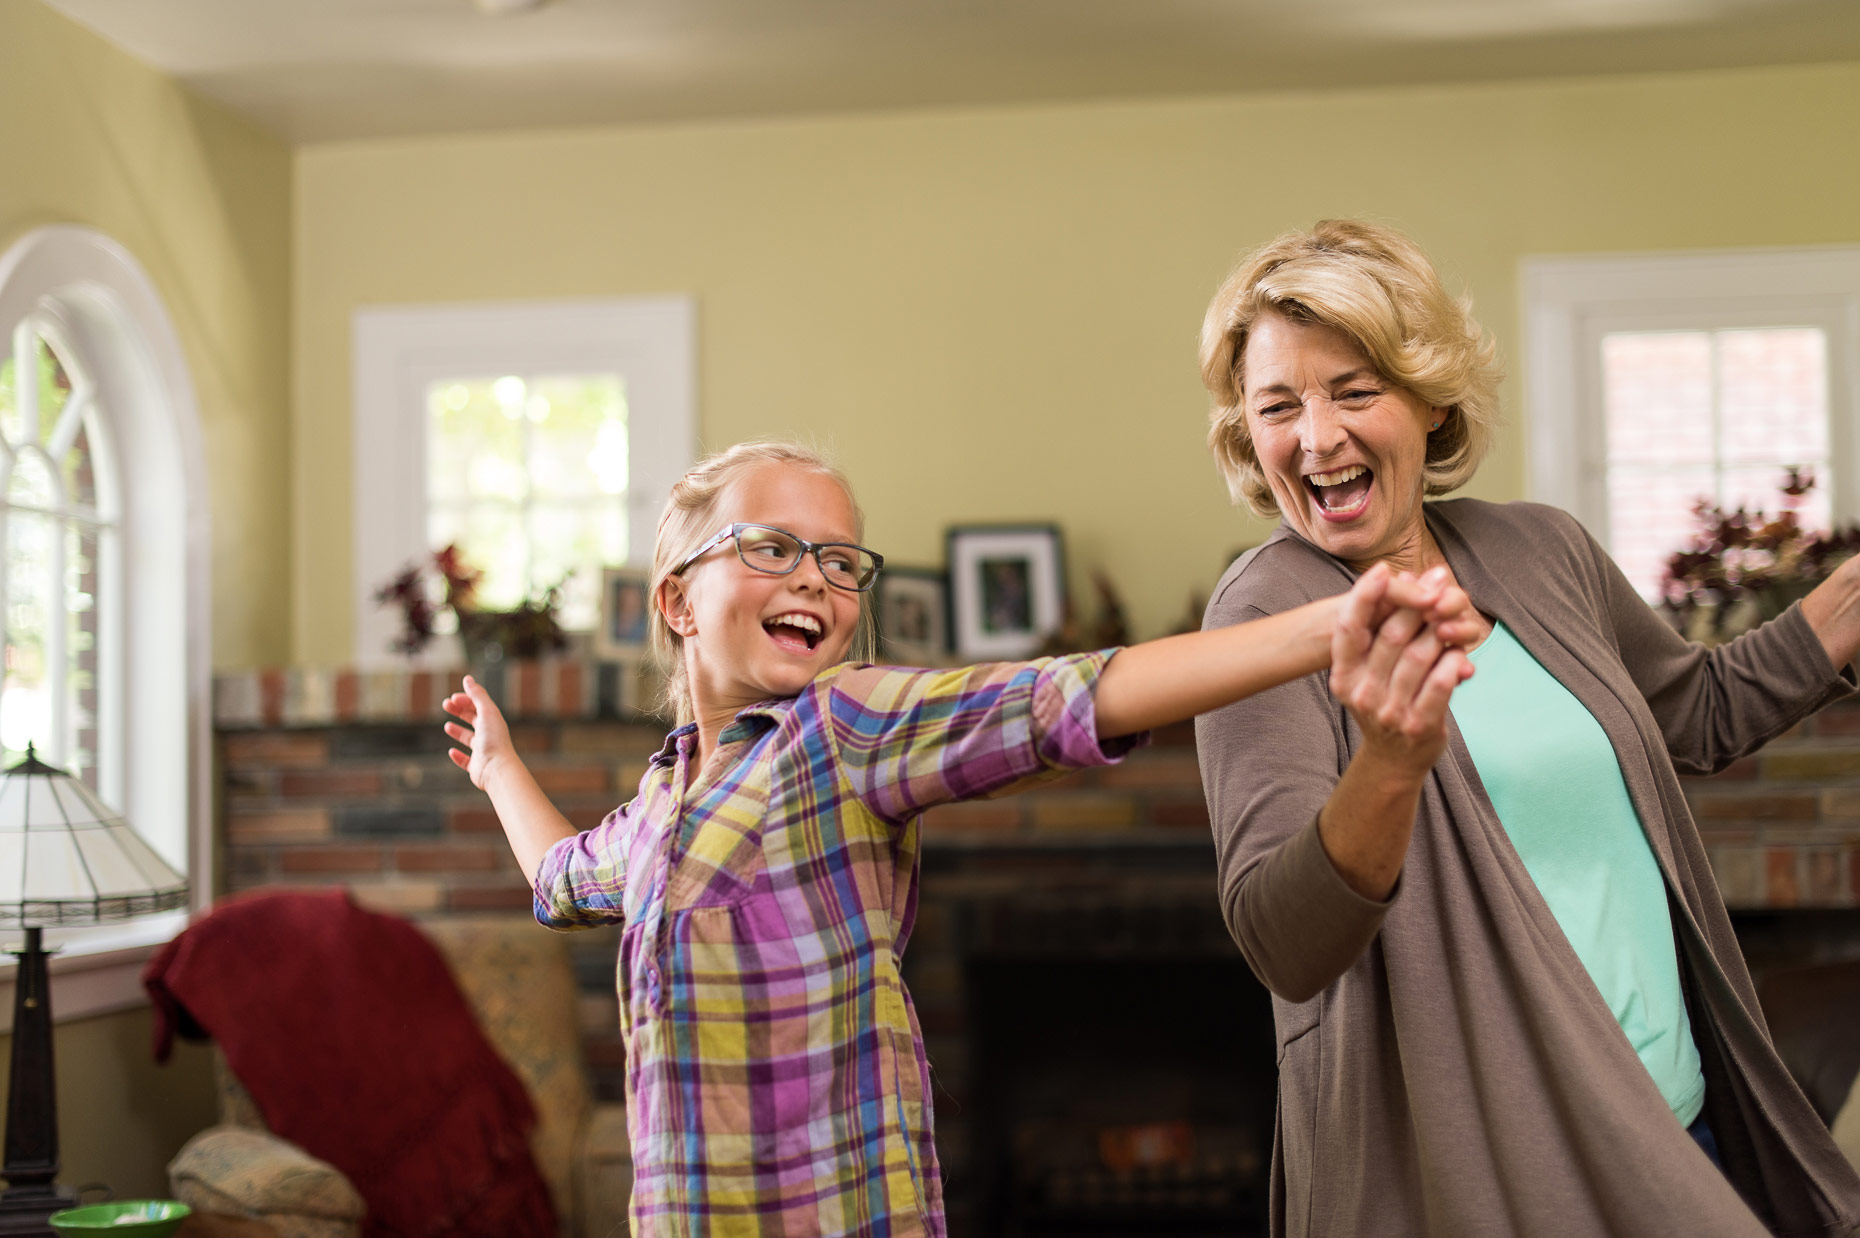 Dancing with Grandma-Advertising Photography